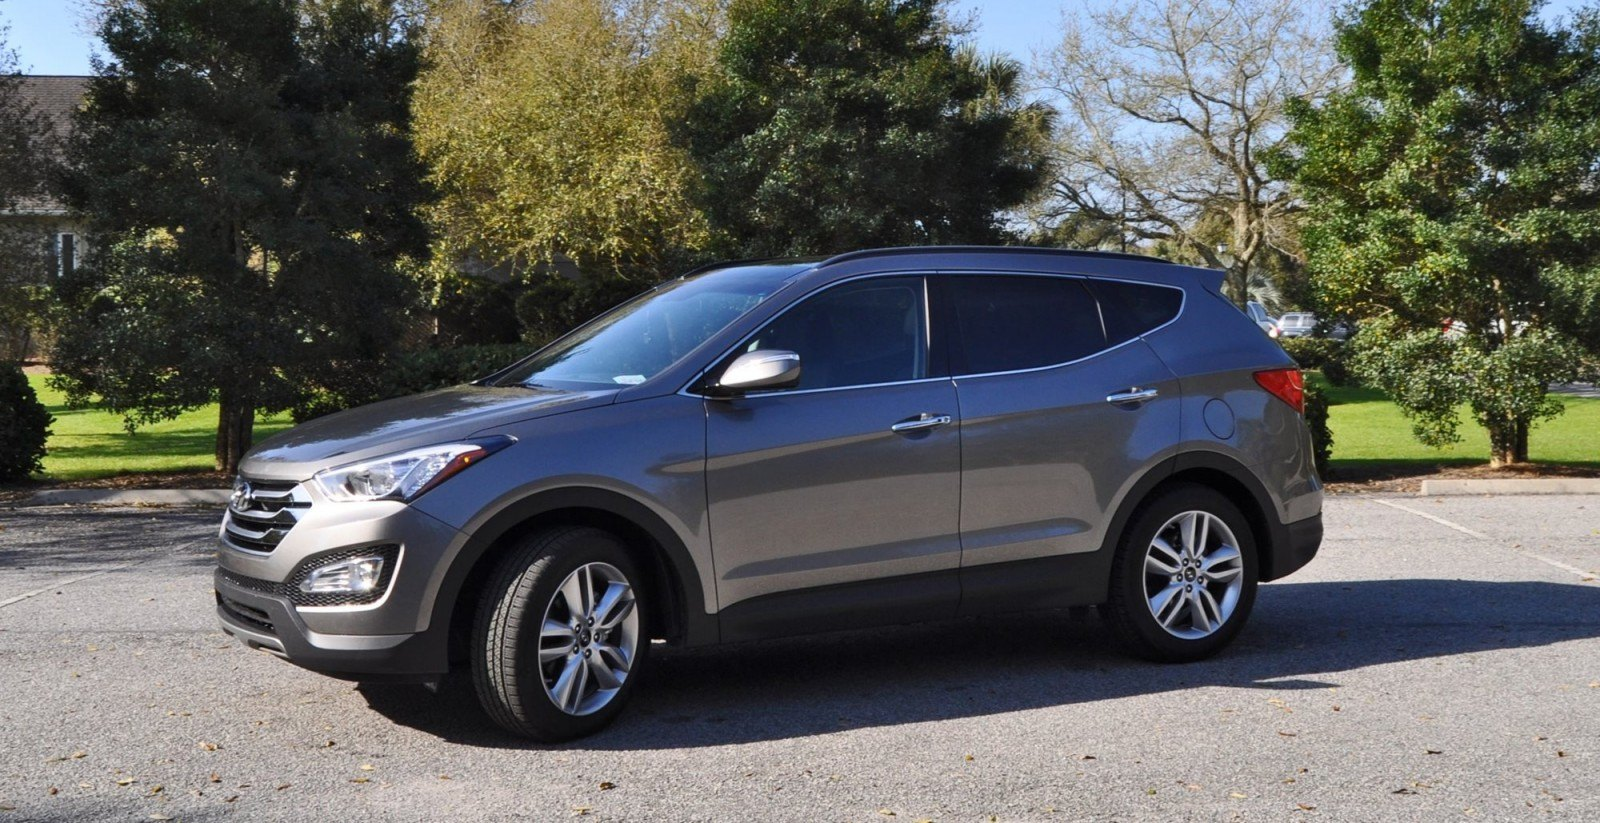 hyundai santa fe sport - photo #28